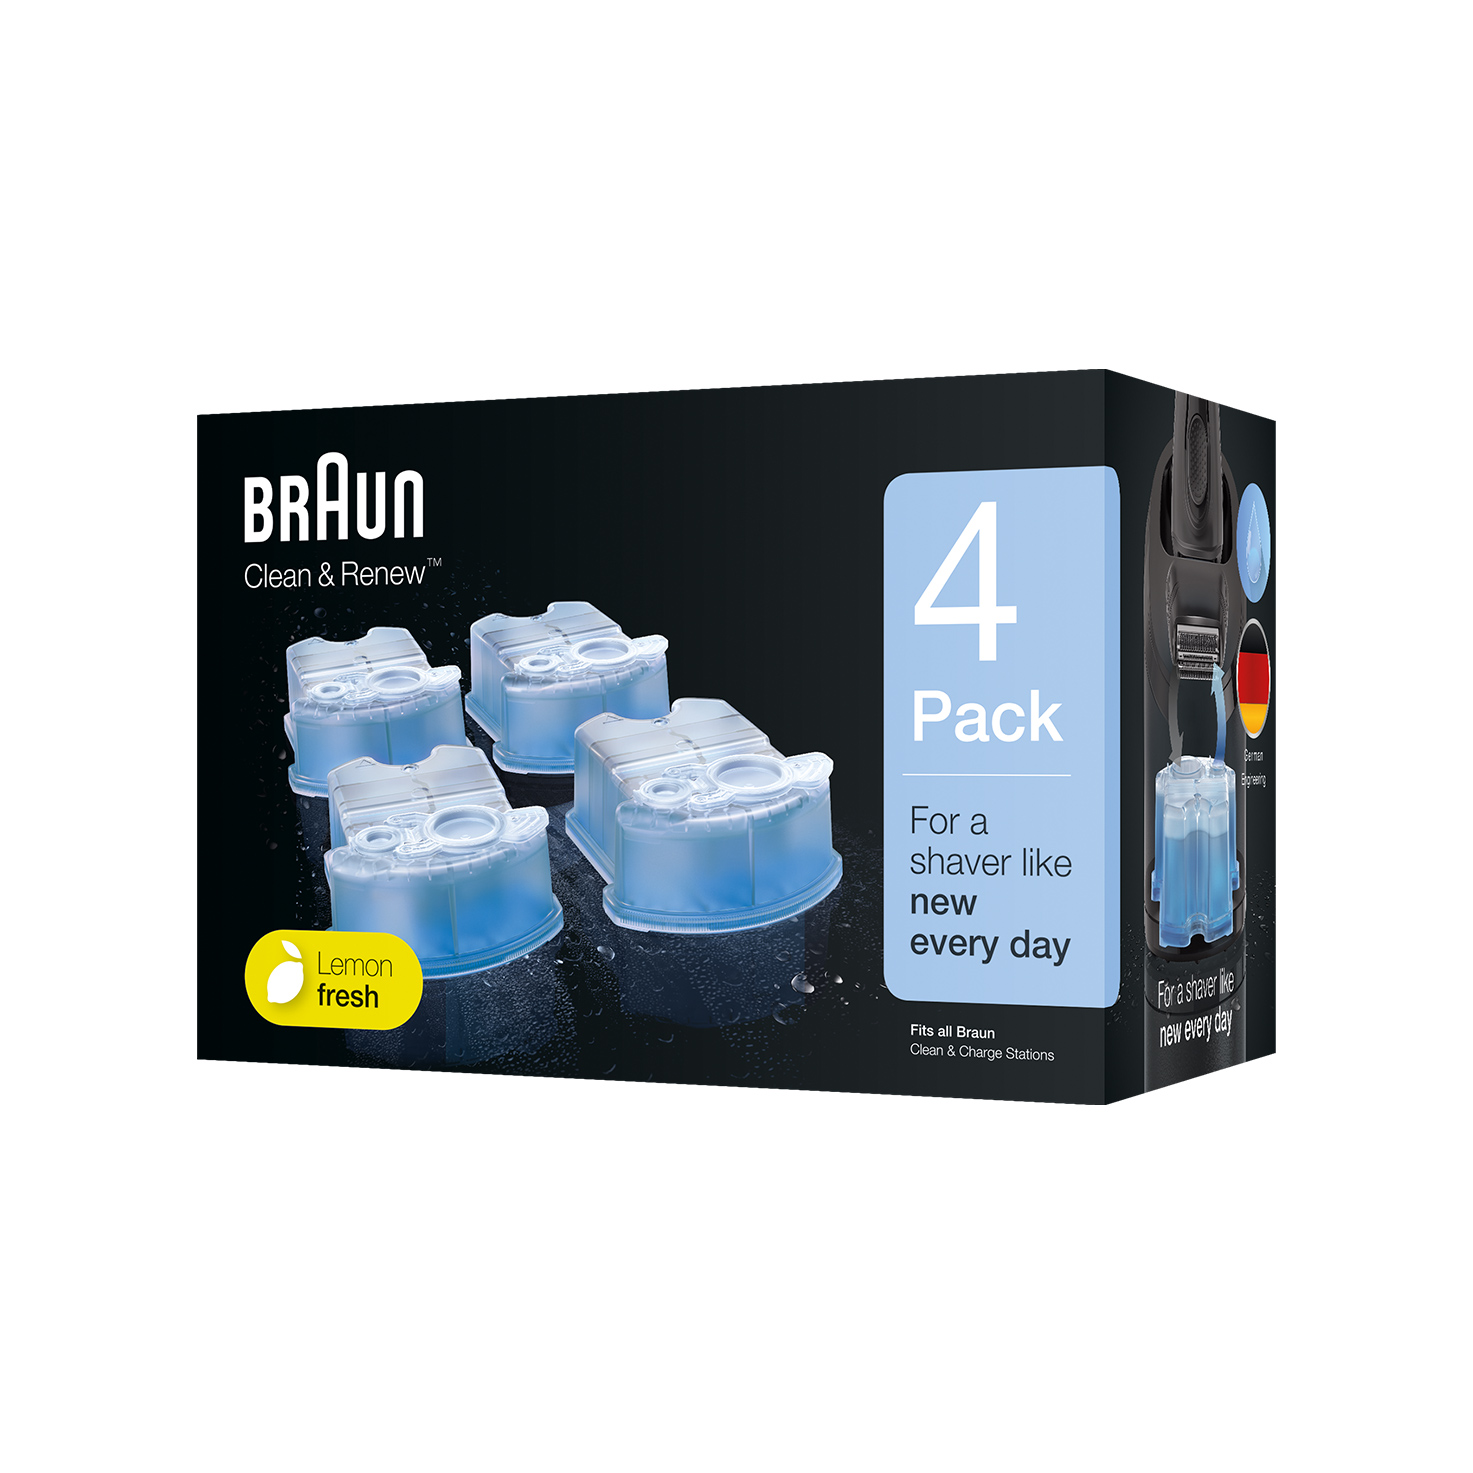 Braun Clean & Renew refill cartridges  CCR - 4 Pack